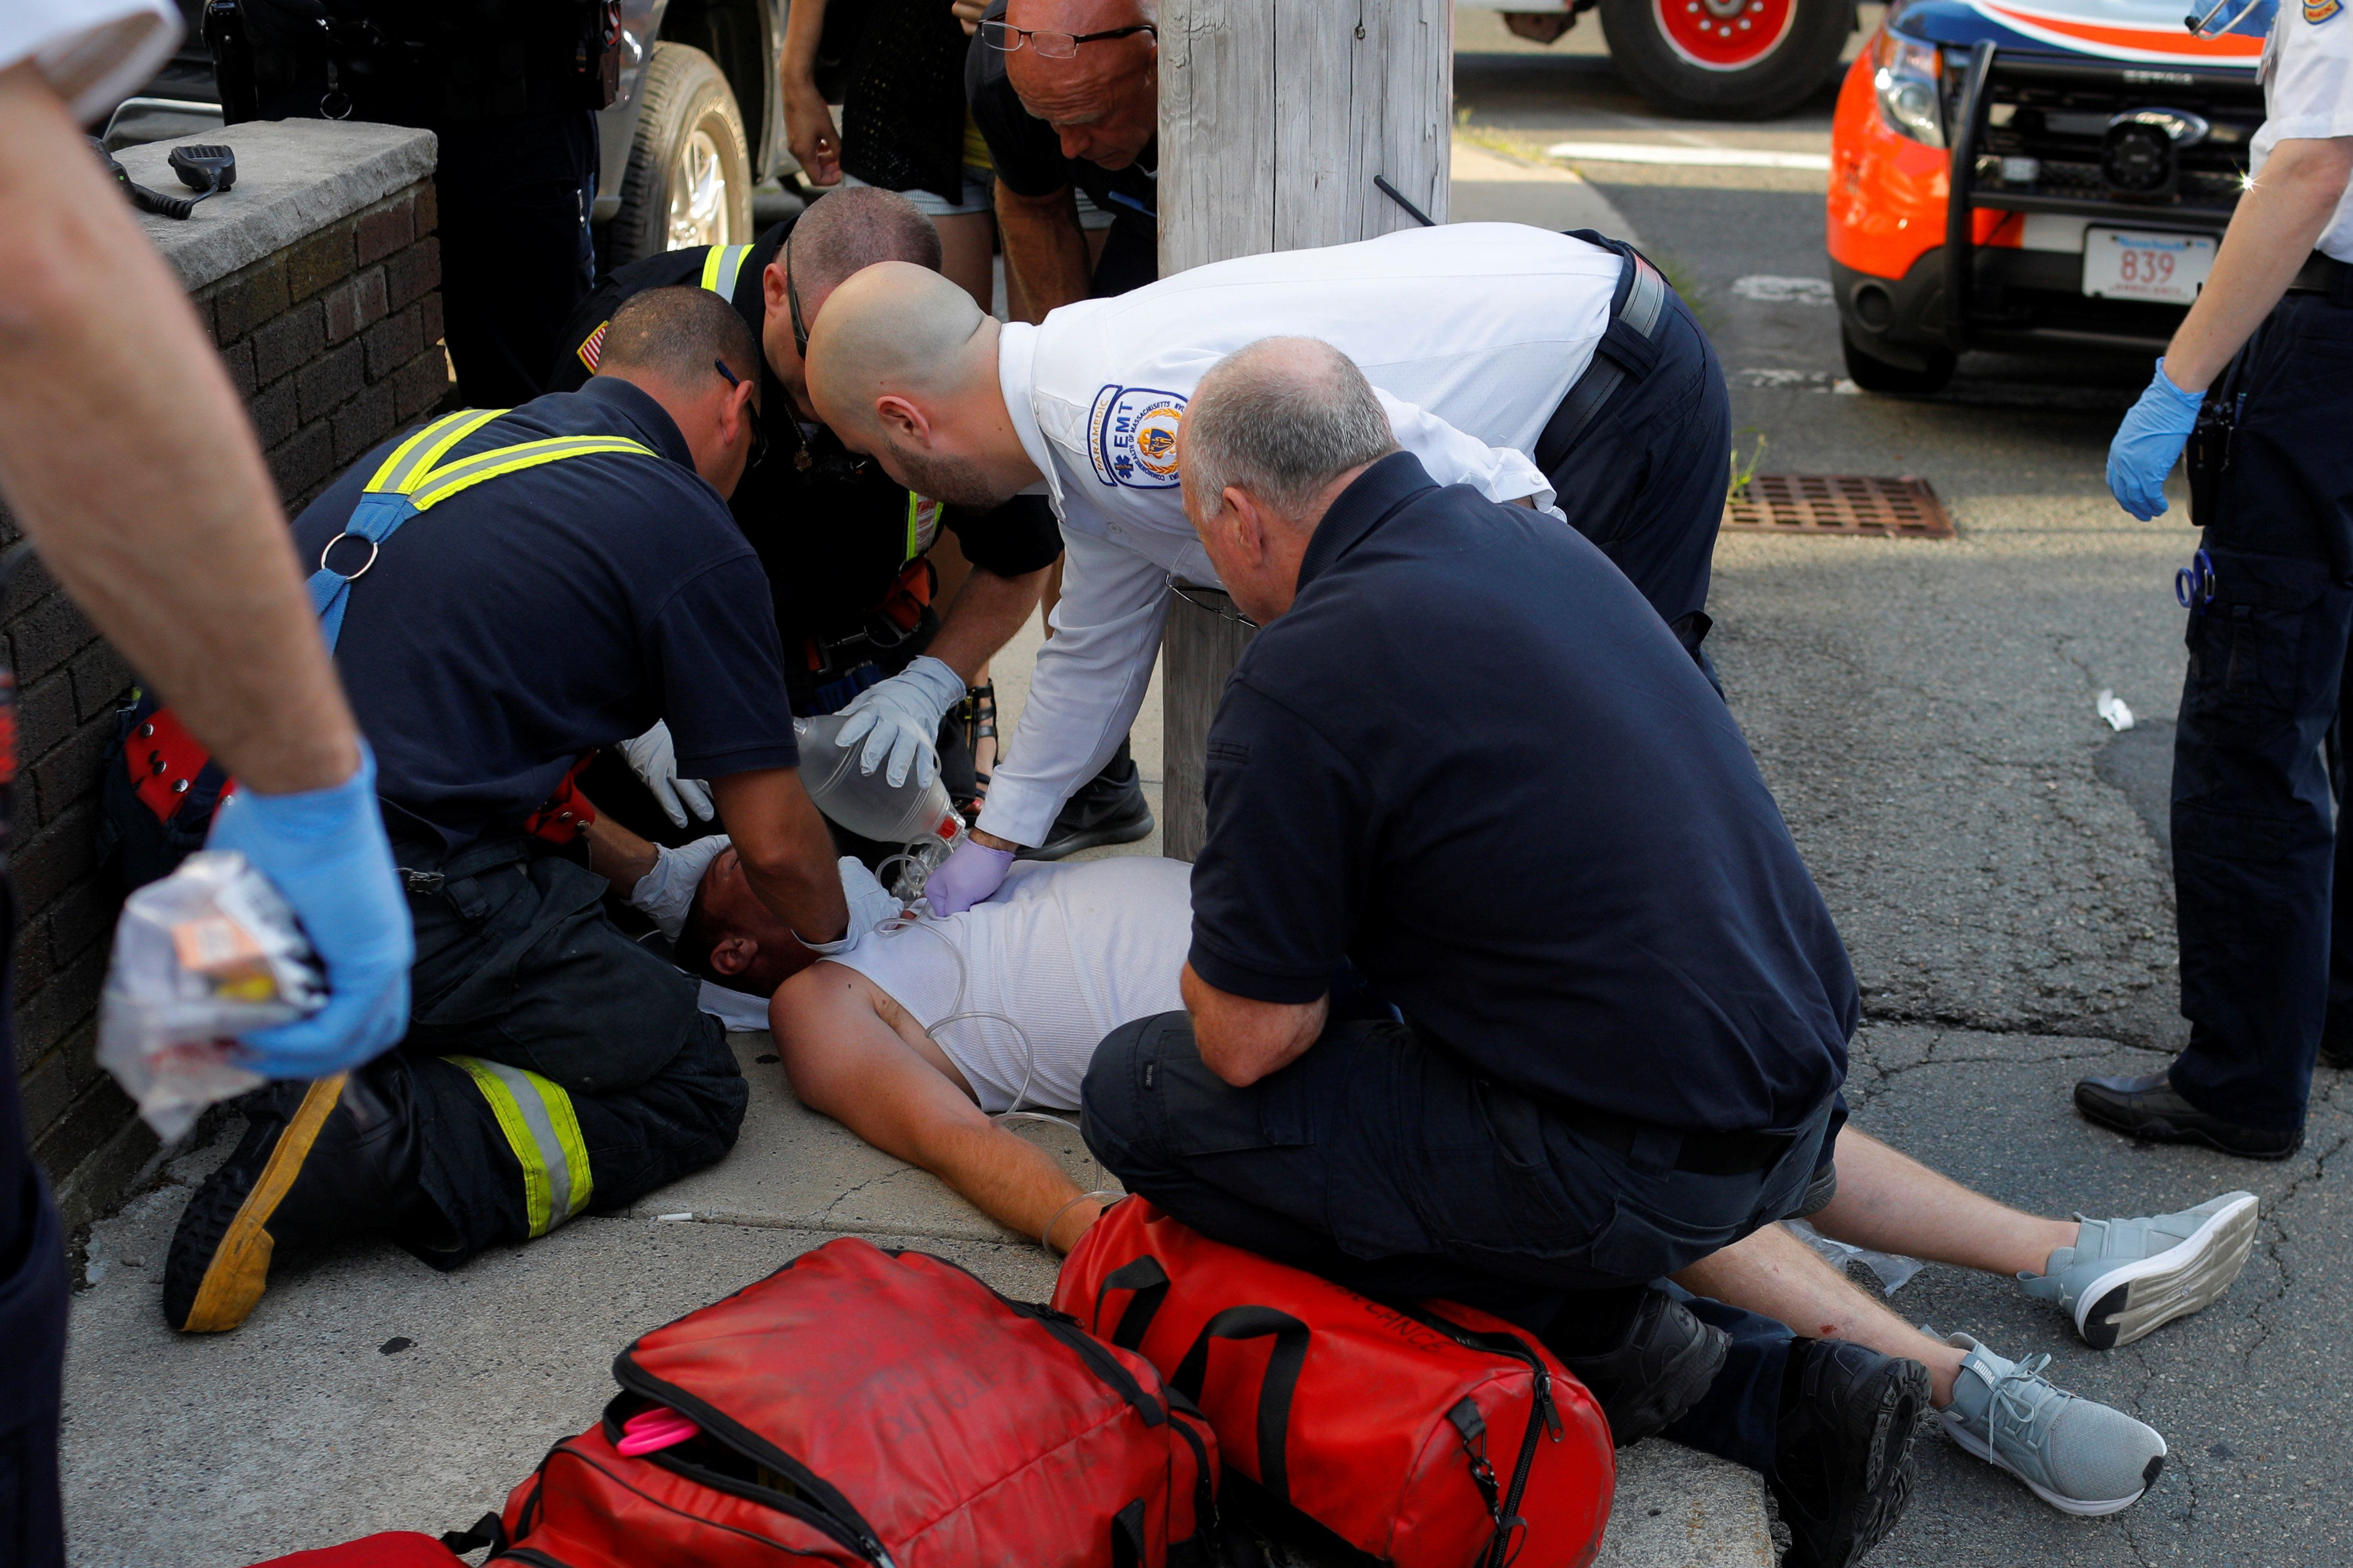 Paramedics and firefighters treat a 32-year-old man who was found unresponsive on a sidewalk after overdosing on opioids in E